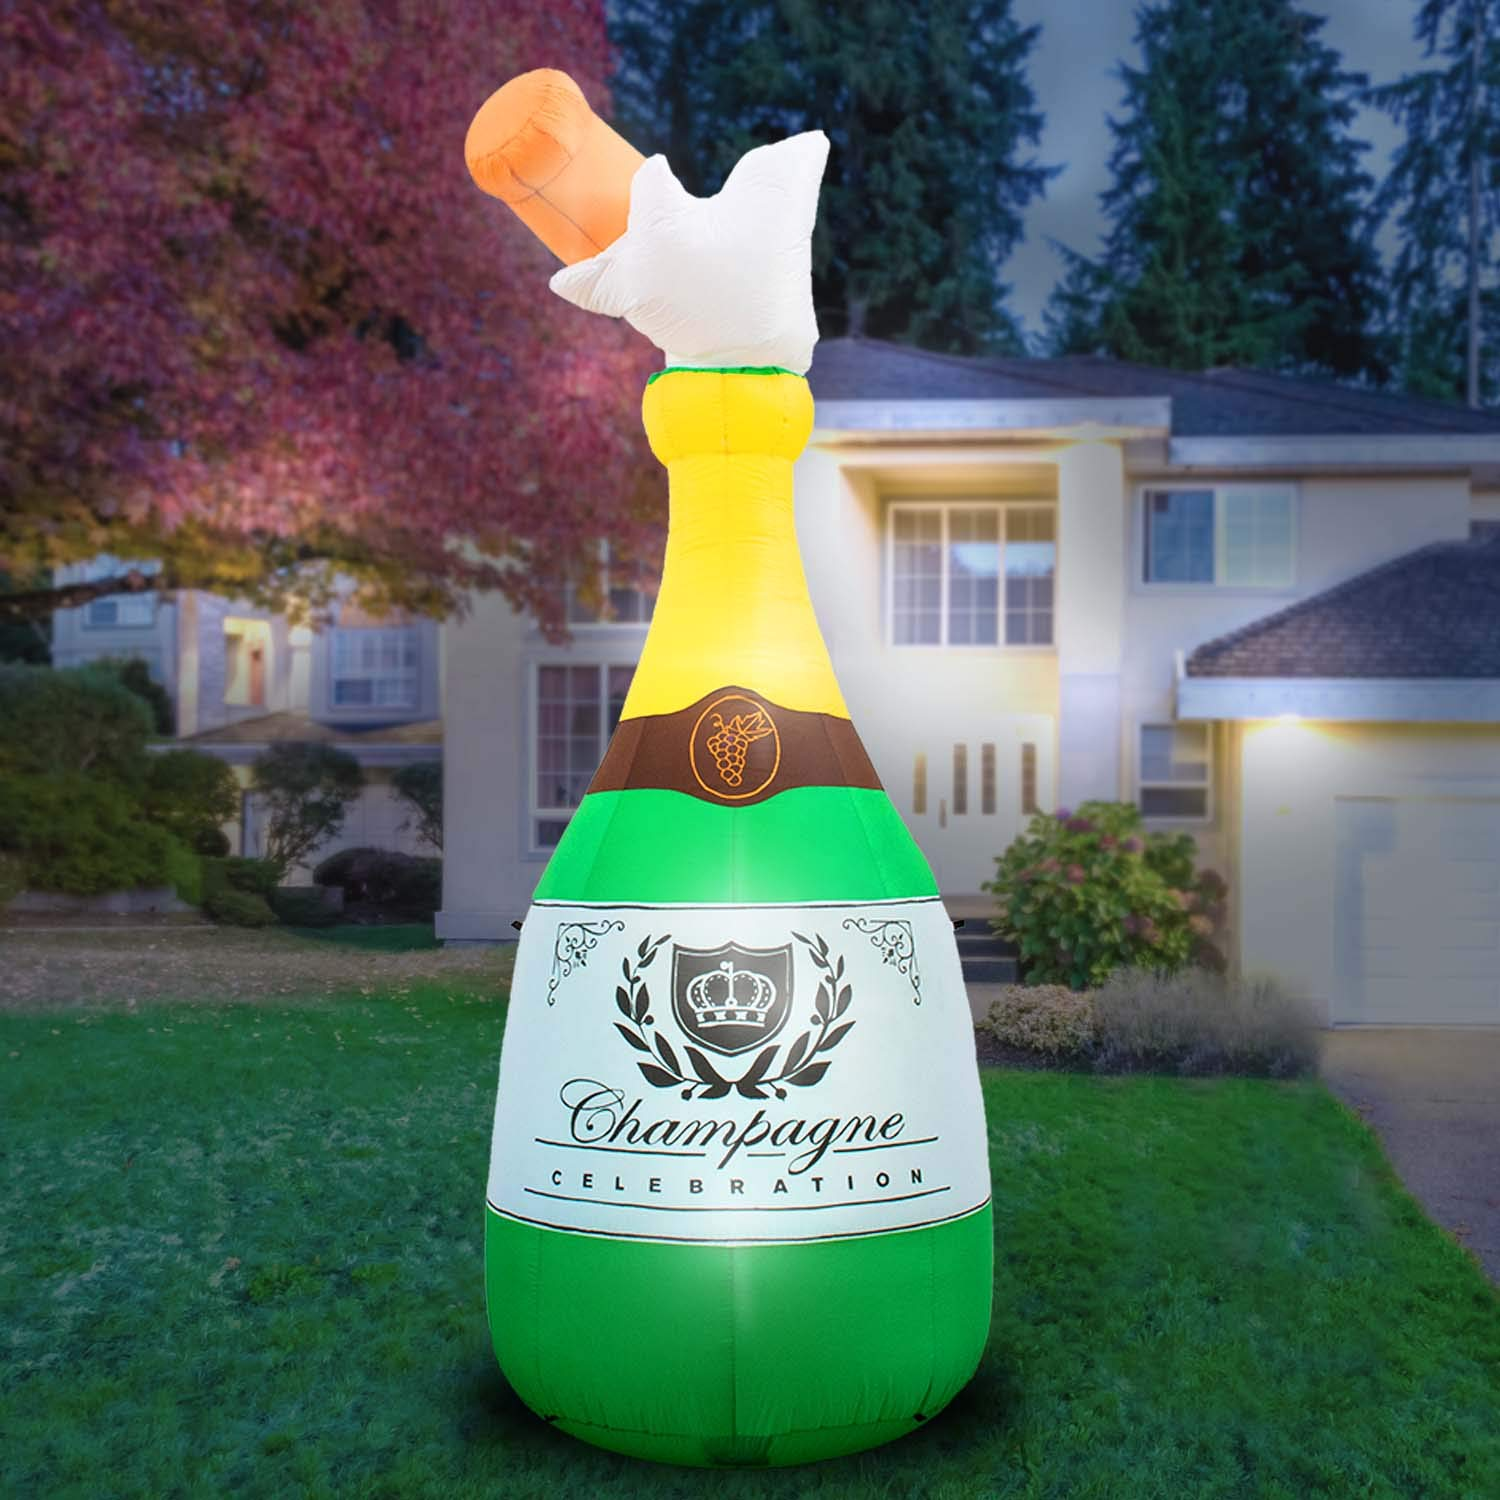 Holidayana 10-Foot Inflatable Champagne Bottle Decoration, Great for Parties and Events, Includes Built-in Bulbs, Tie-Down Points, and Powerful Built-in Fan